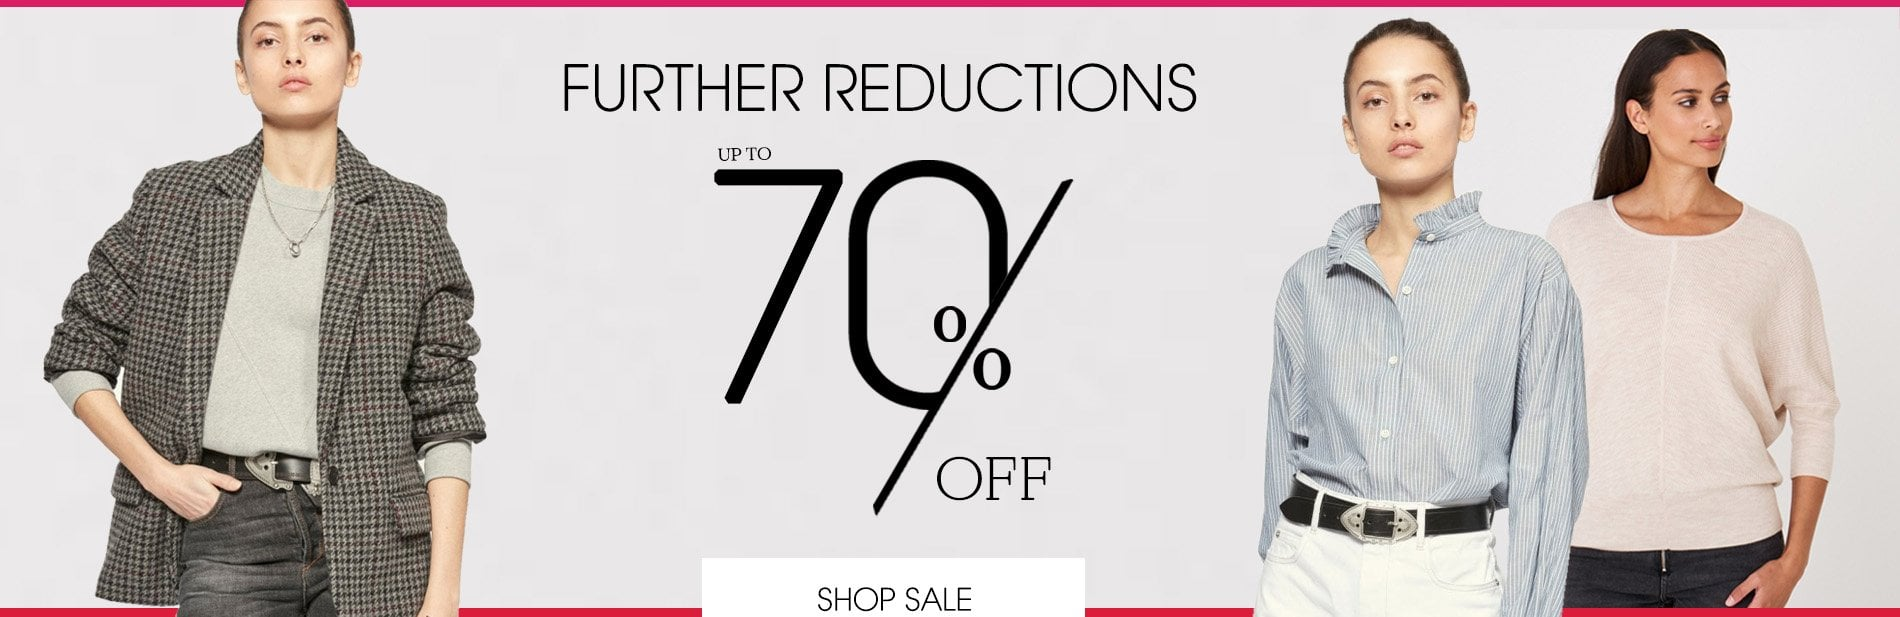 Further Reductions 1